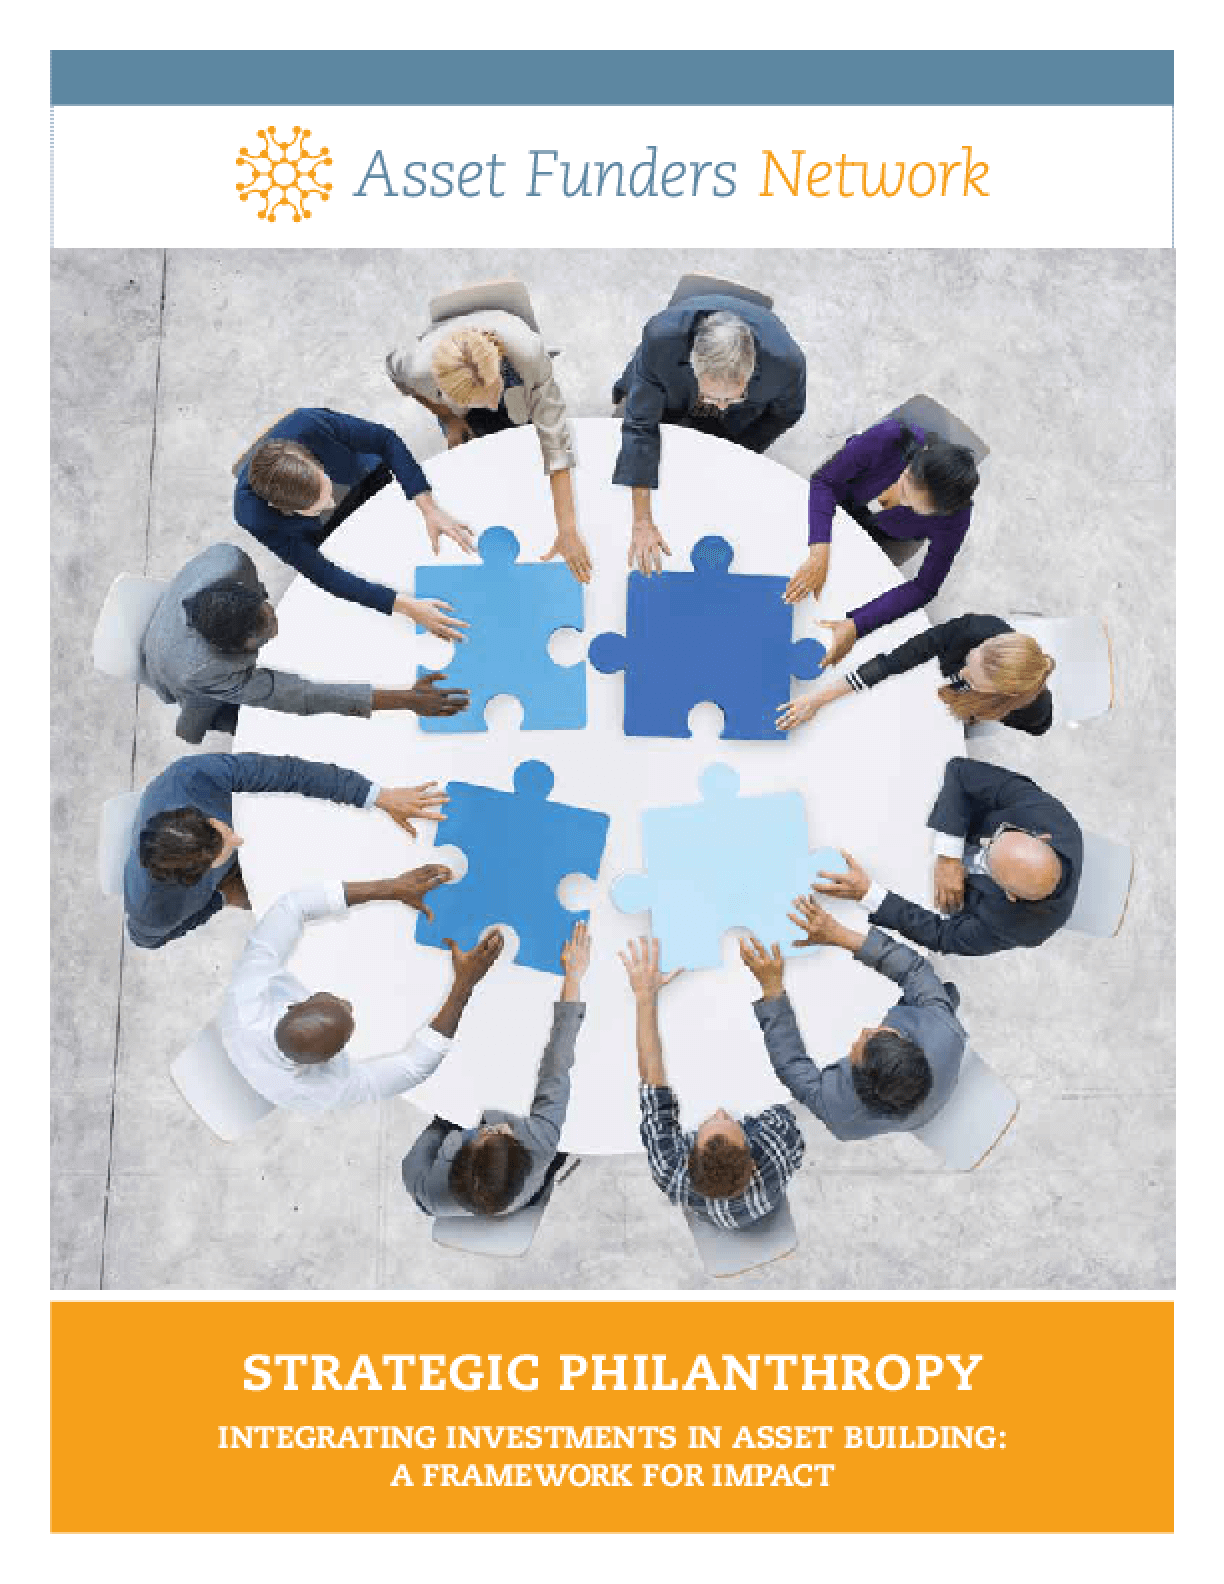 Strategic Philanthropy Integrating Investments In Asset Building: A Framework for Impact